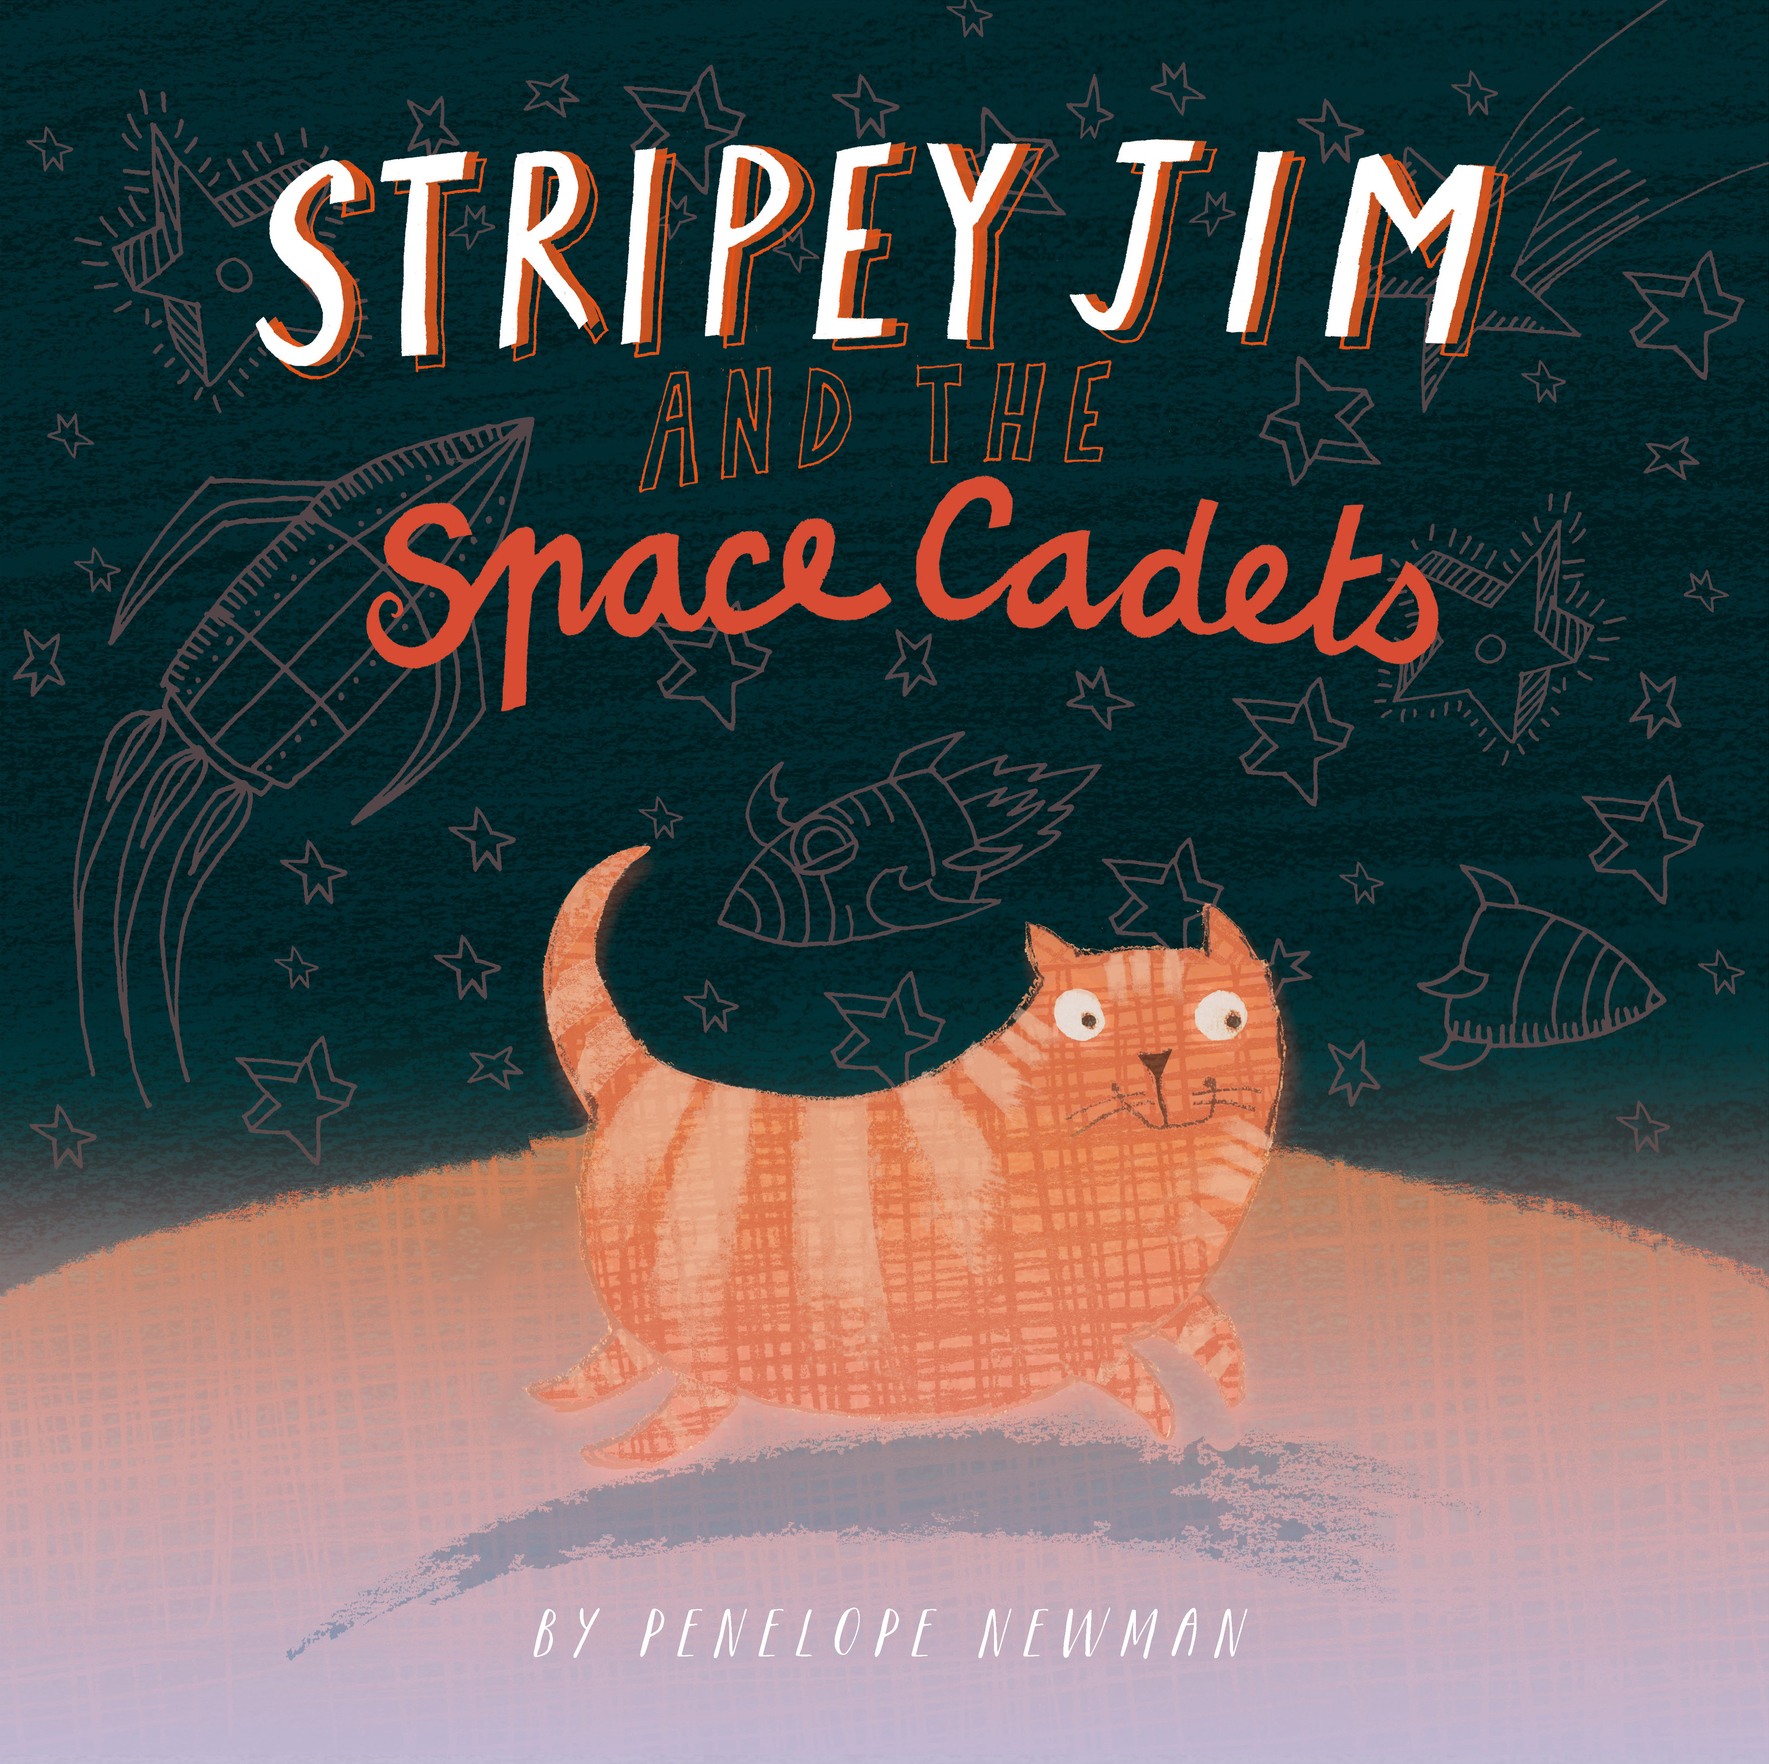 stripey_jim_and_the_space_cadets_cover